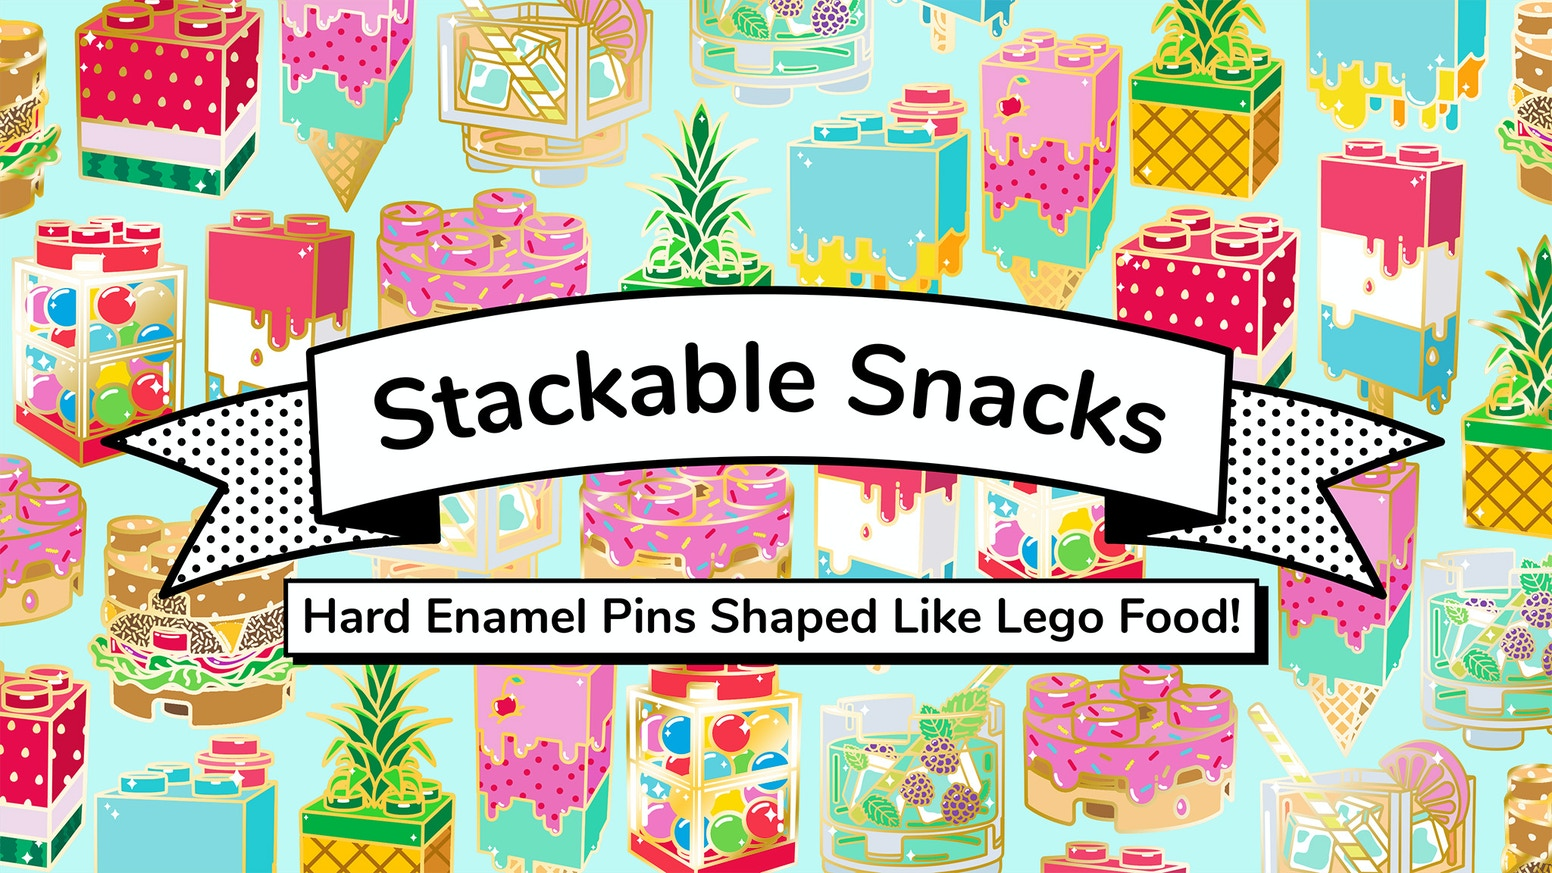 Colourful enamel pins of your favourite food items in the form of lego blocks!